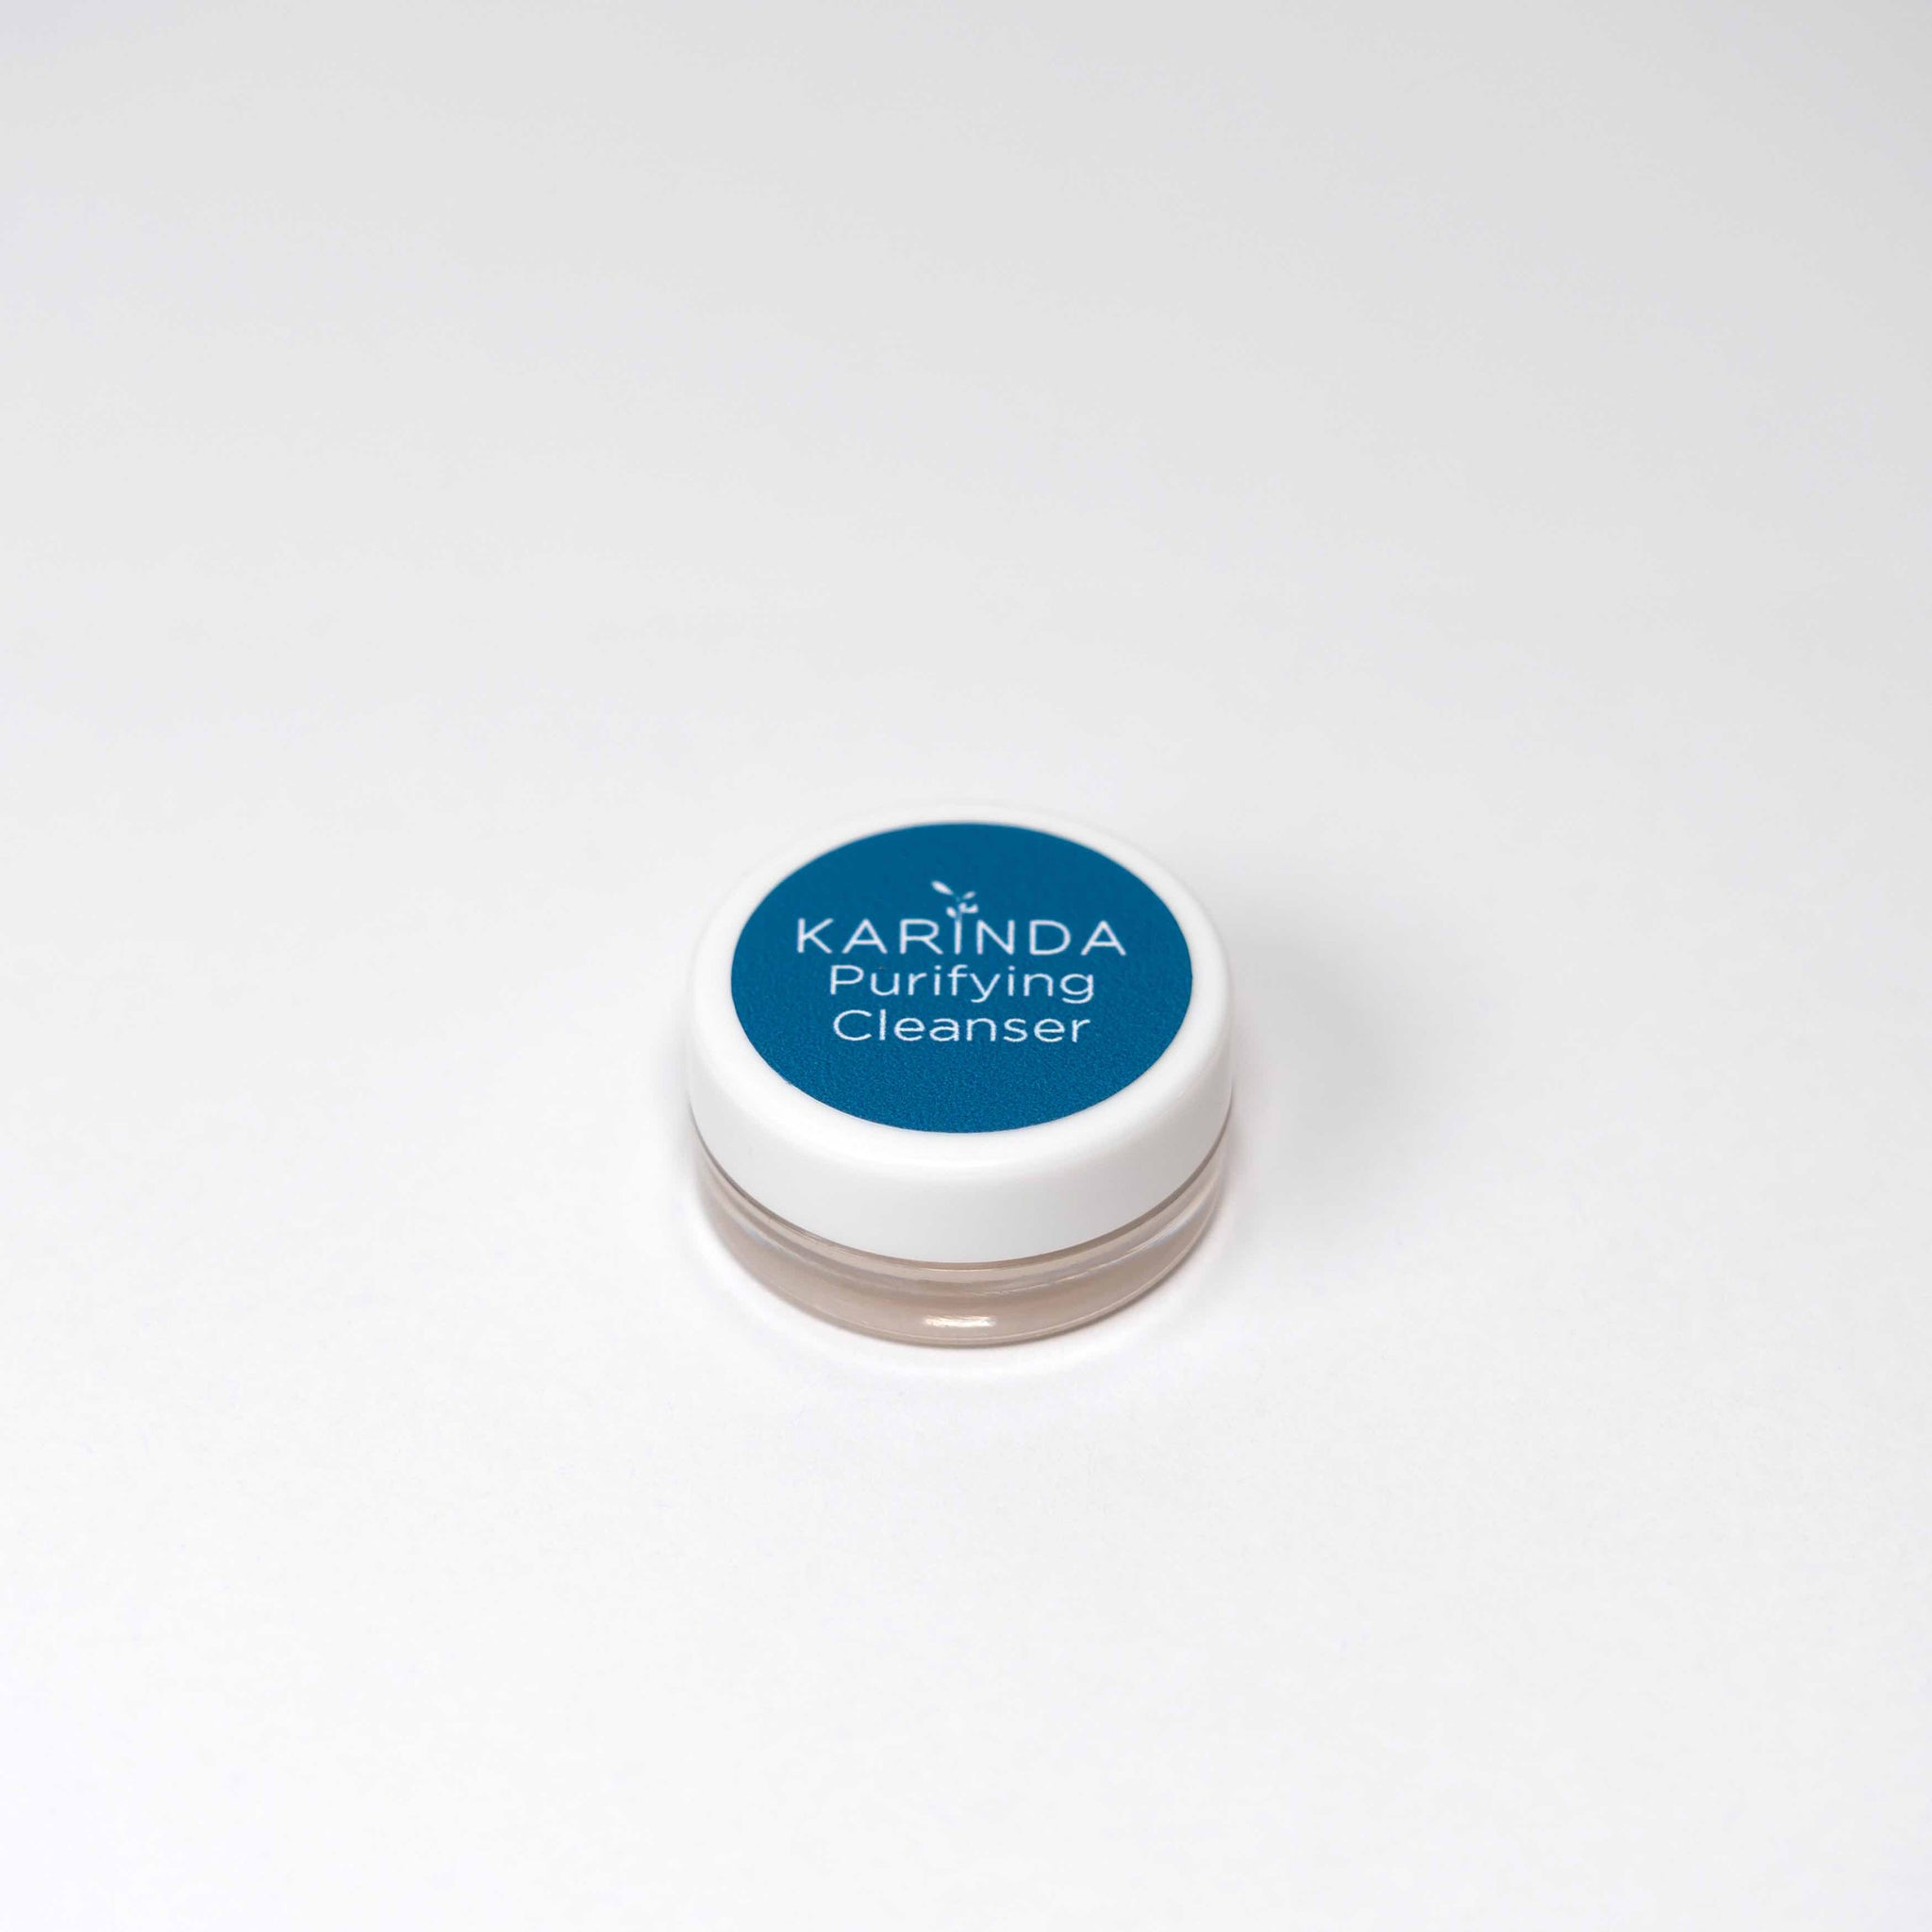 Purifying Cleanser Sample 3g